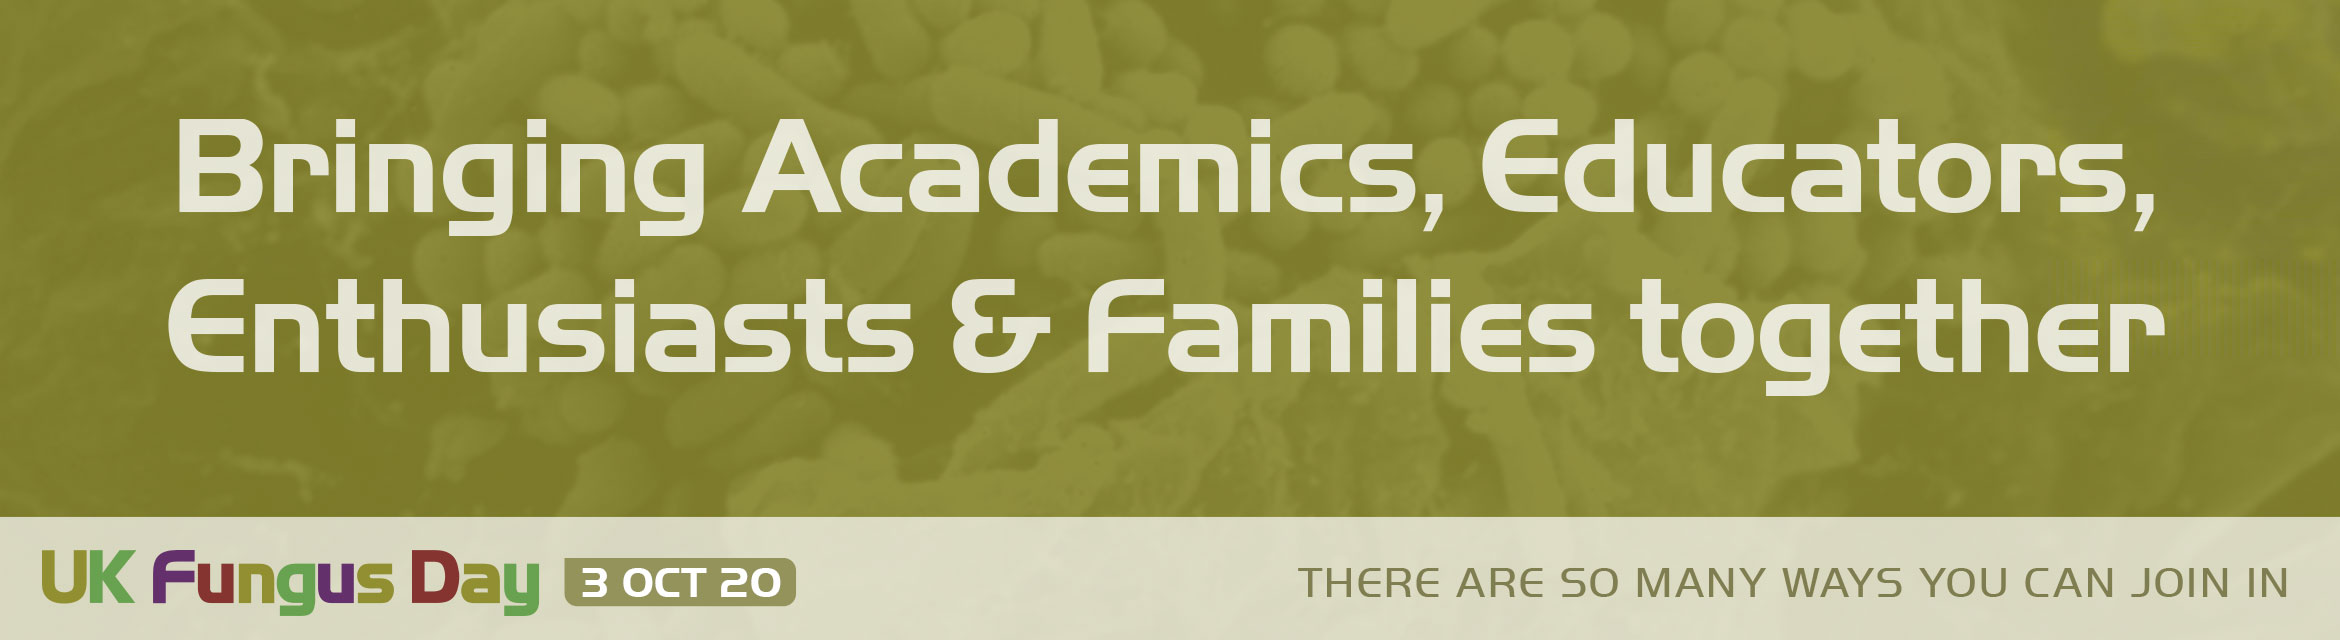 Bringing Academics, Educators, Enthusiasts & Families together